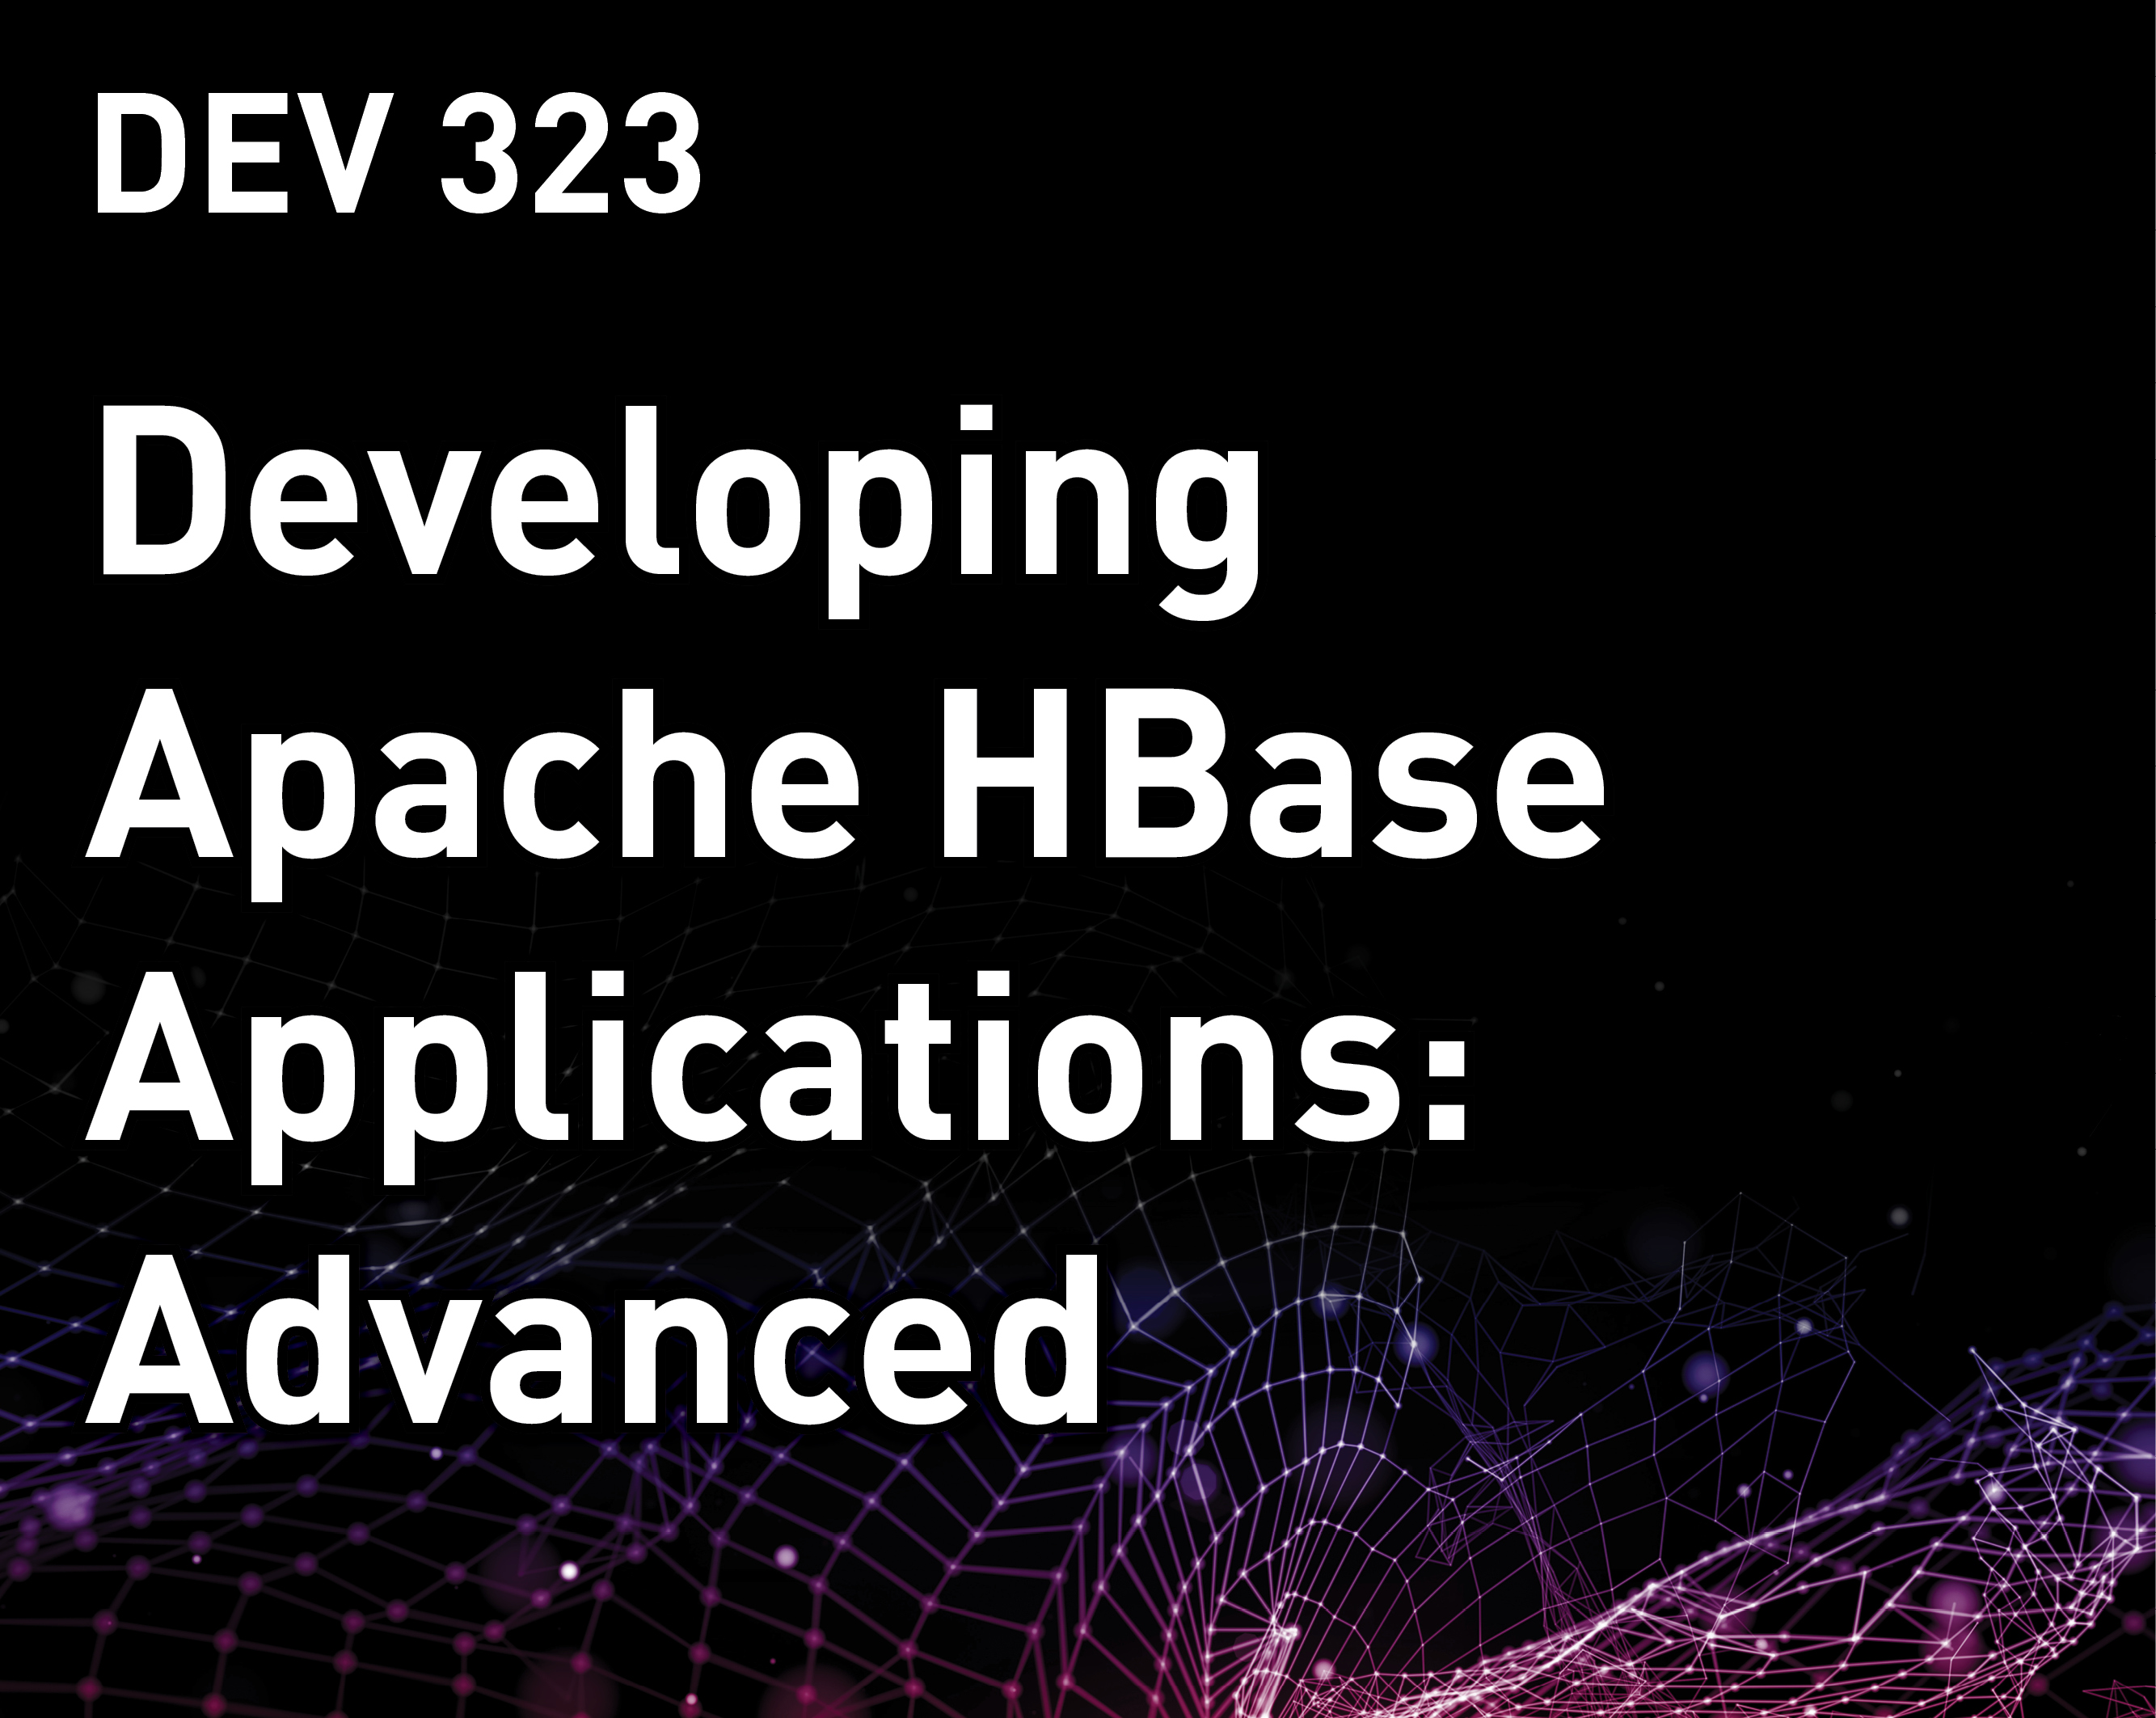 Developing Apache HBase Applications: Advanced